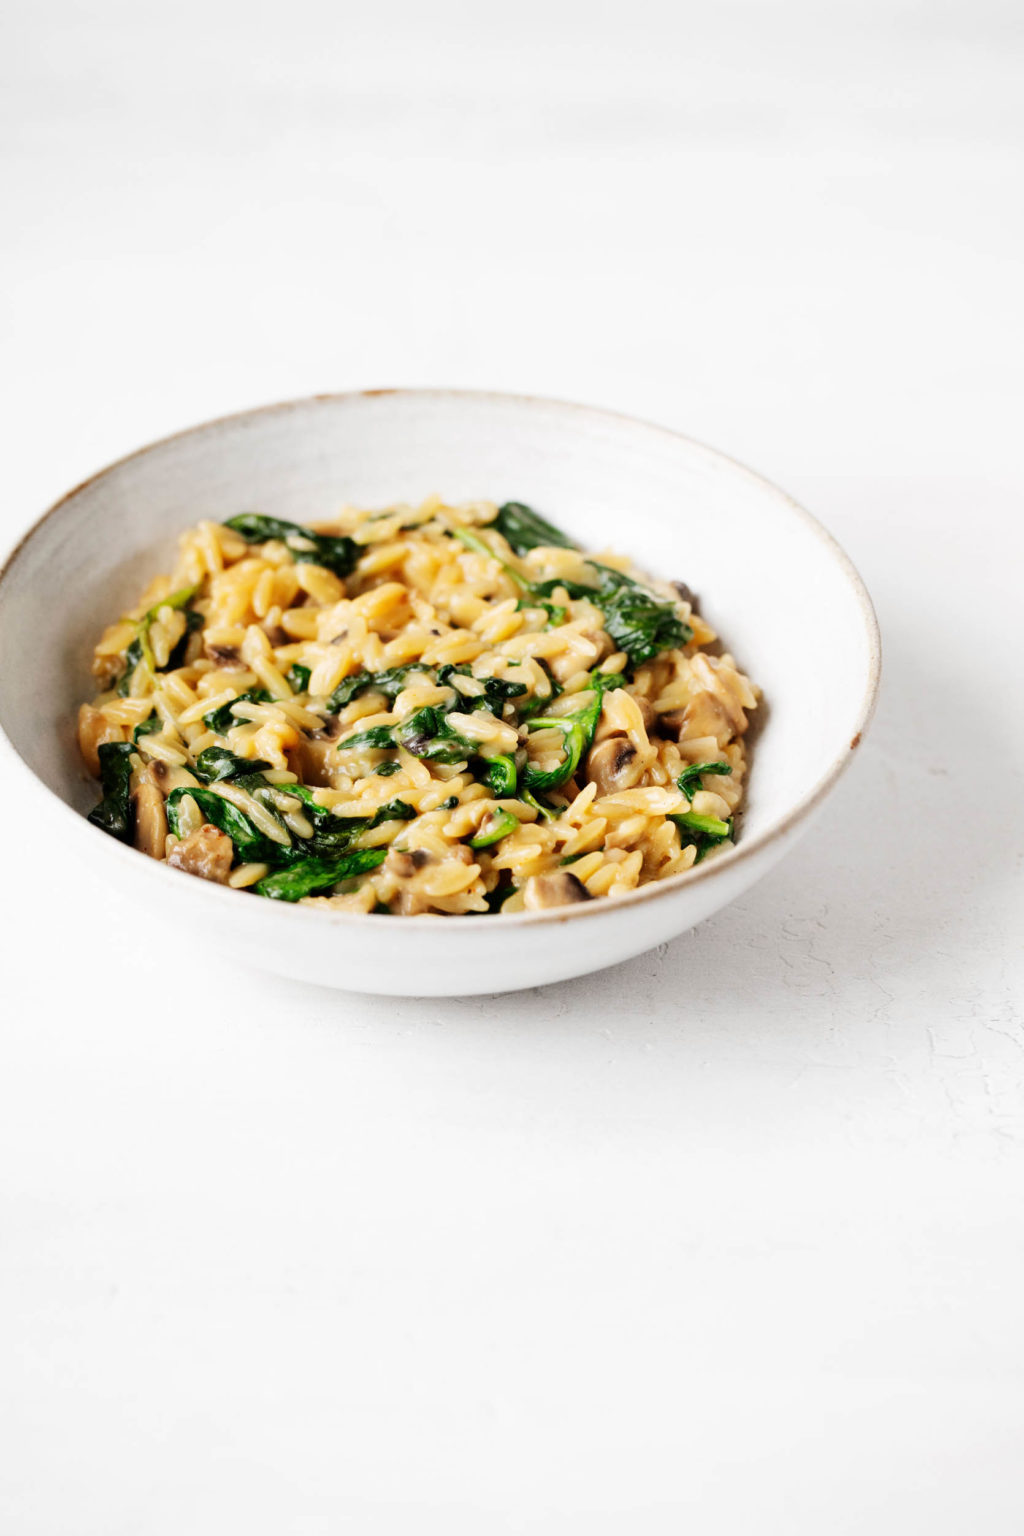 A white bowl with a pale brown rim has been filled with a mixture of small pasta and greens.